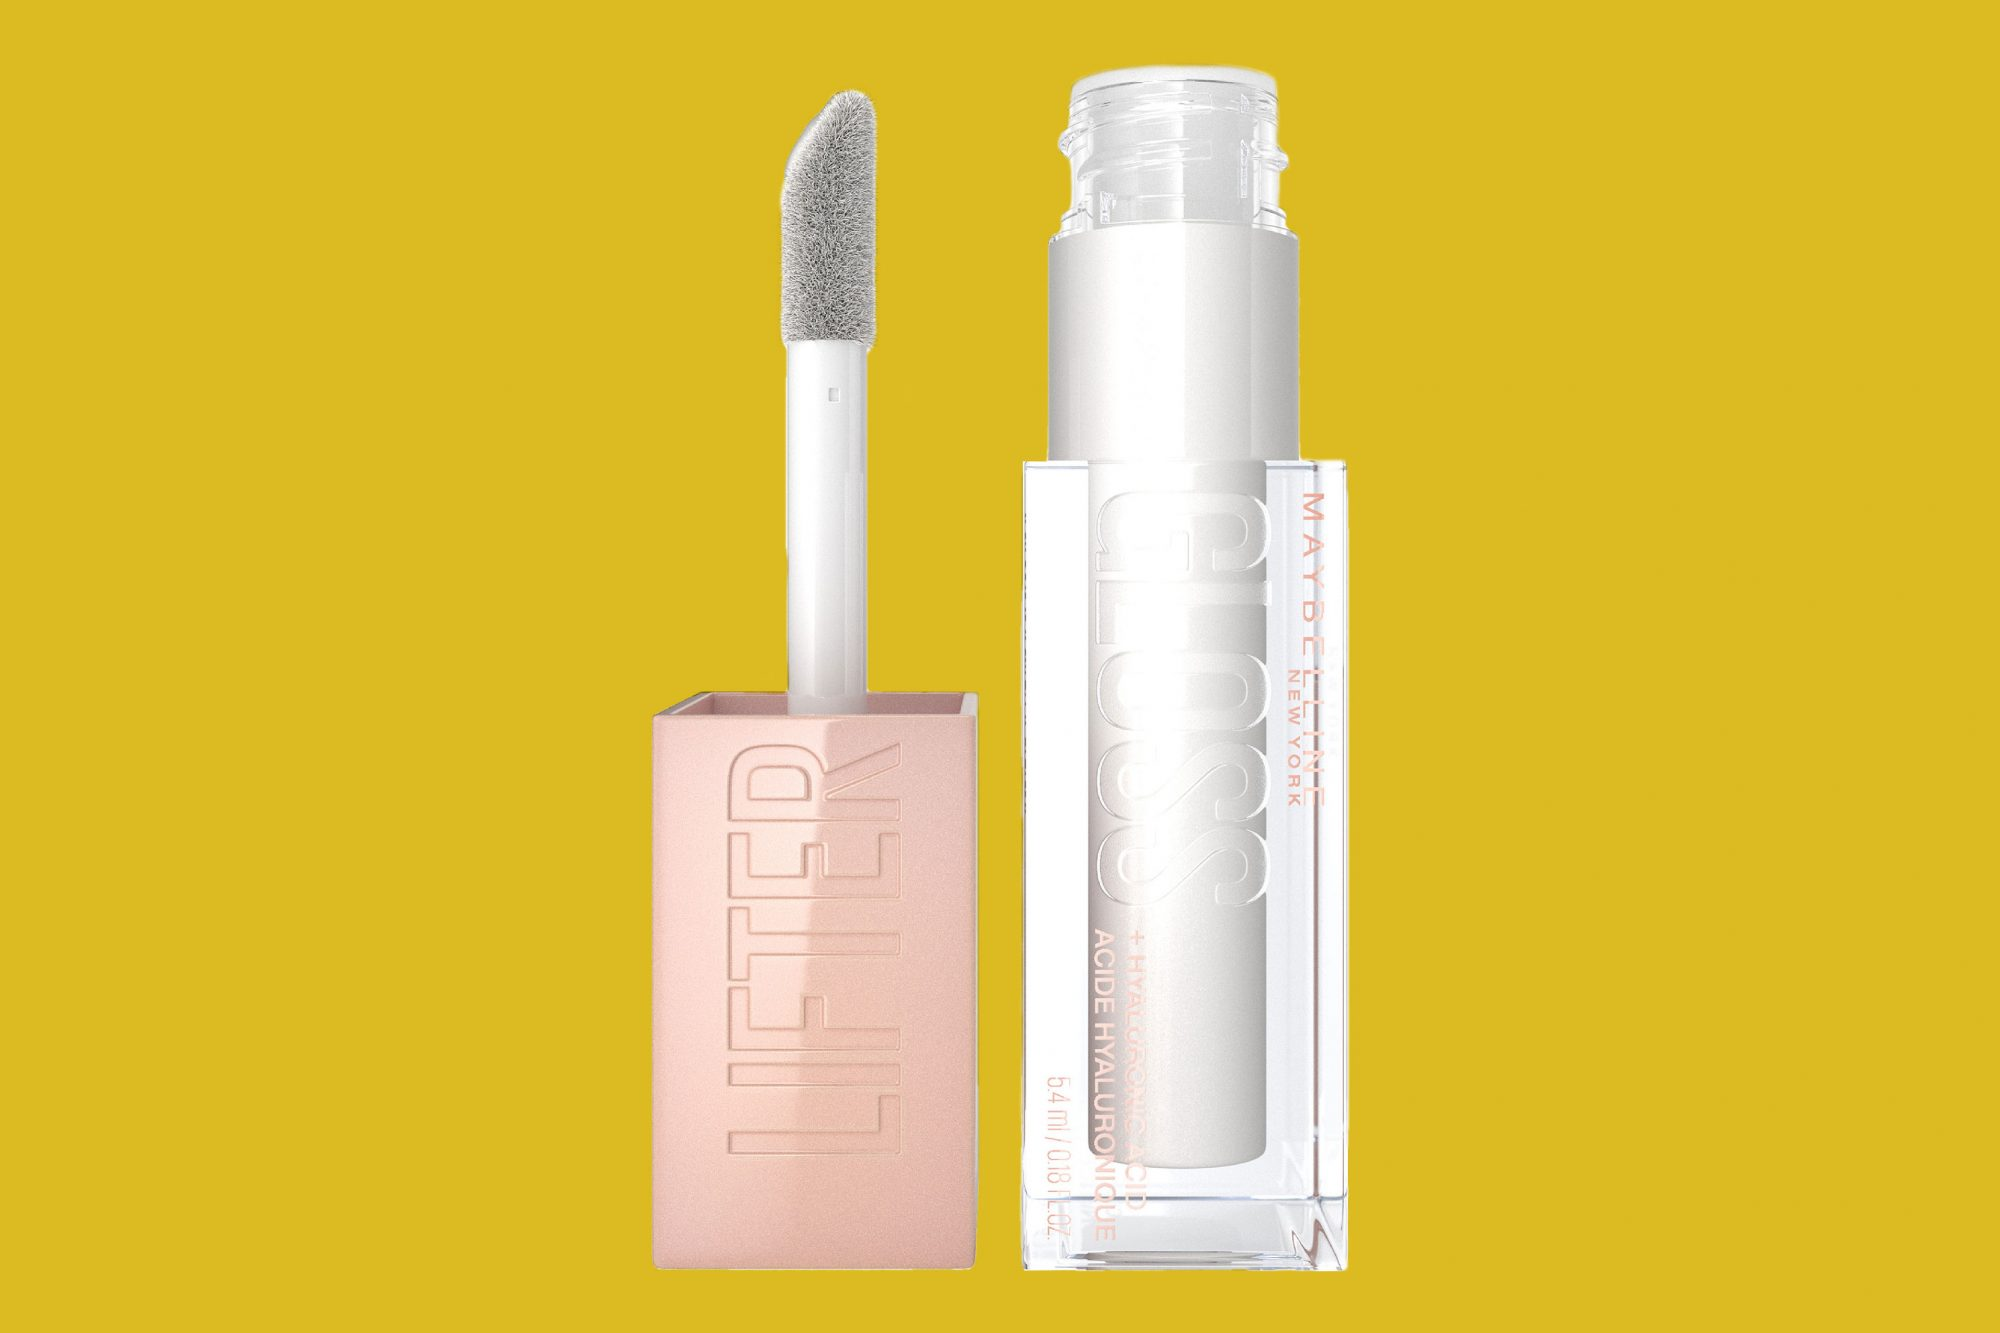 Maybelline Lip Lifter Gloss with Hyaluronic Acid